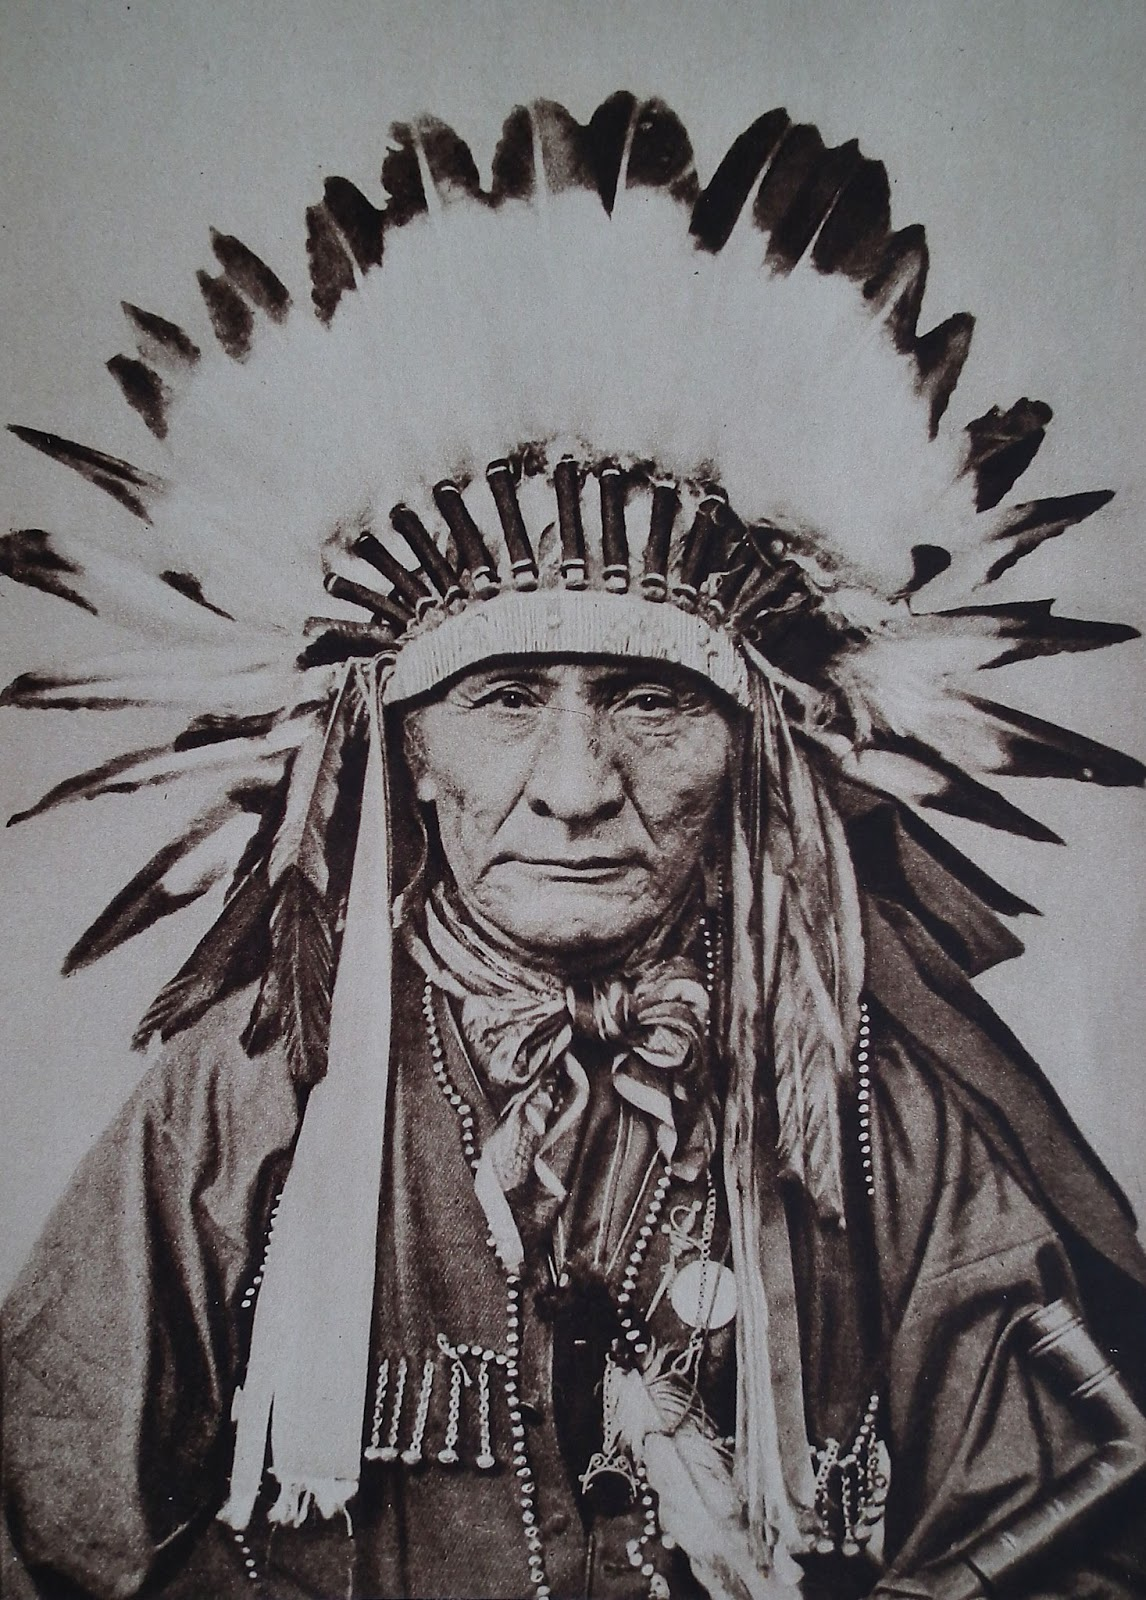 The occupation of the apache indians pueblo indians and navajo indians in america